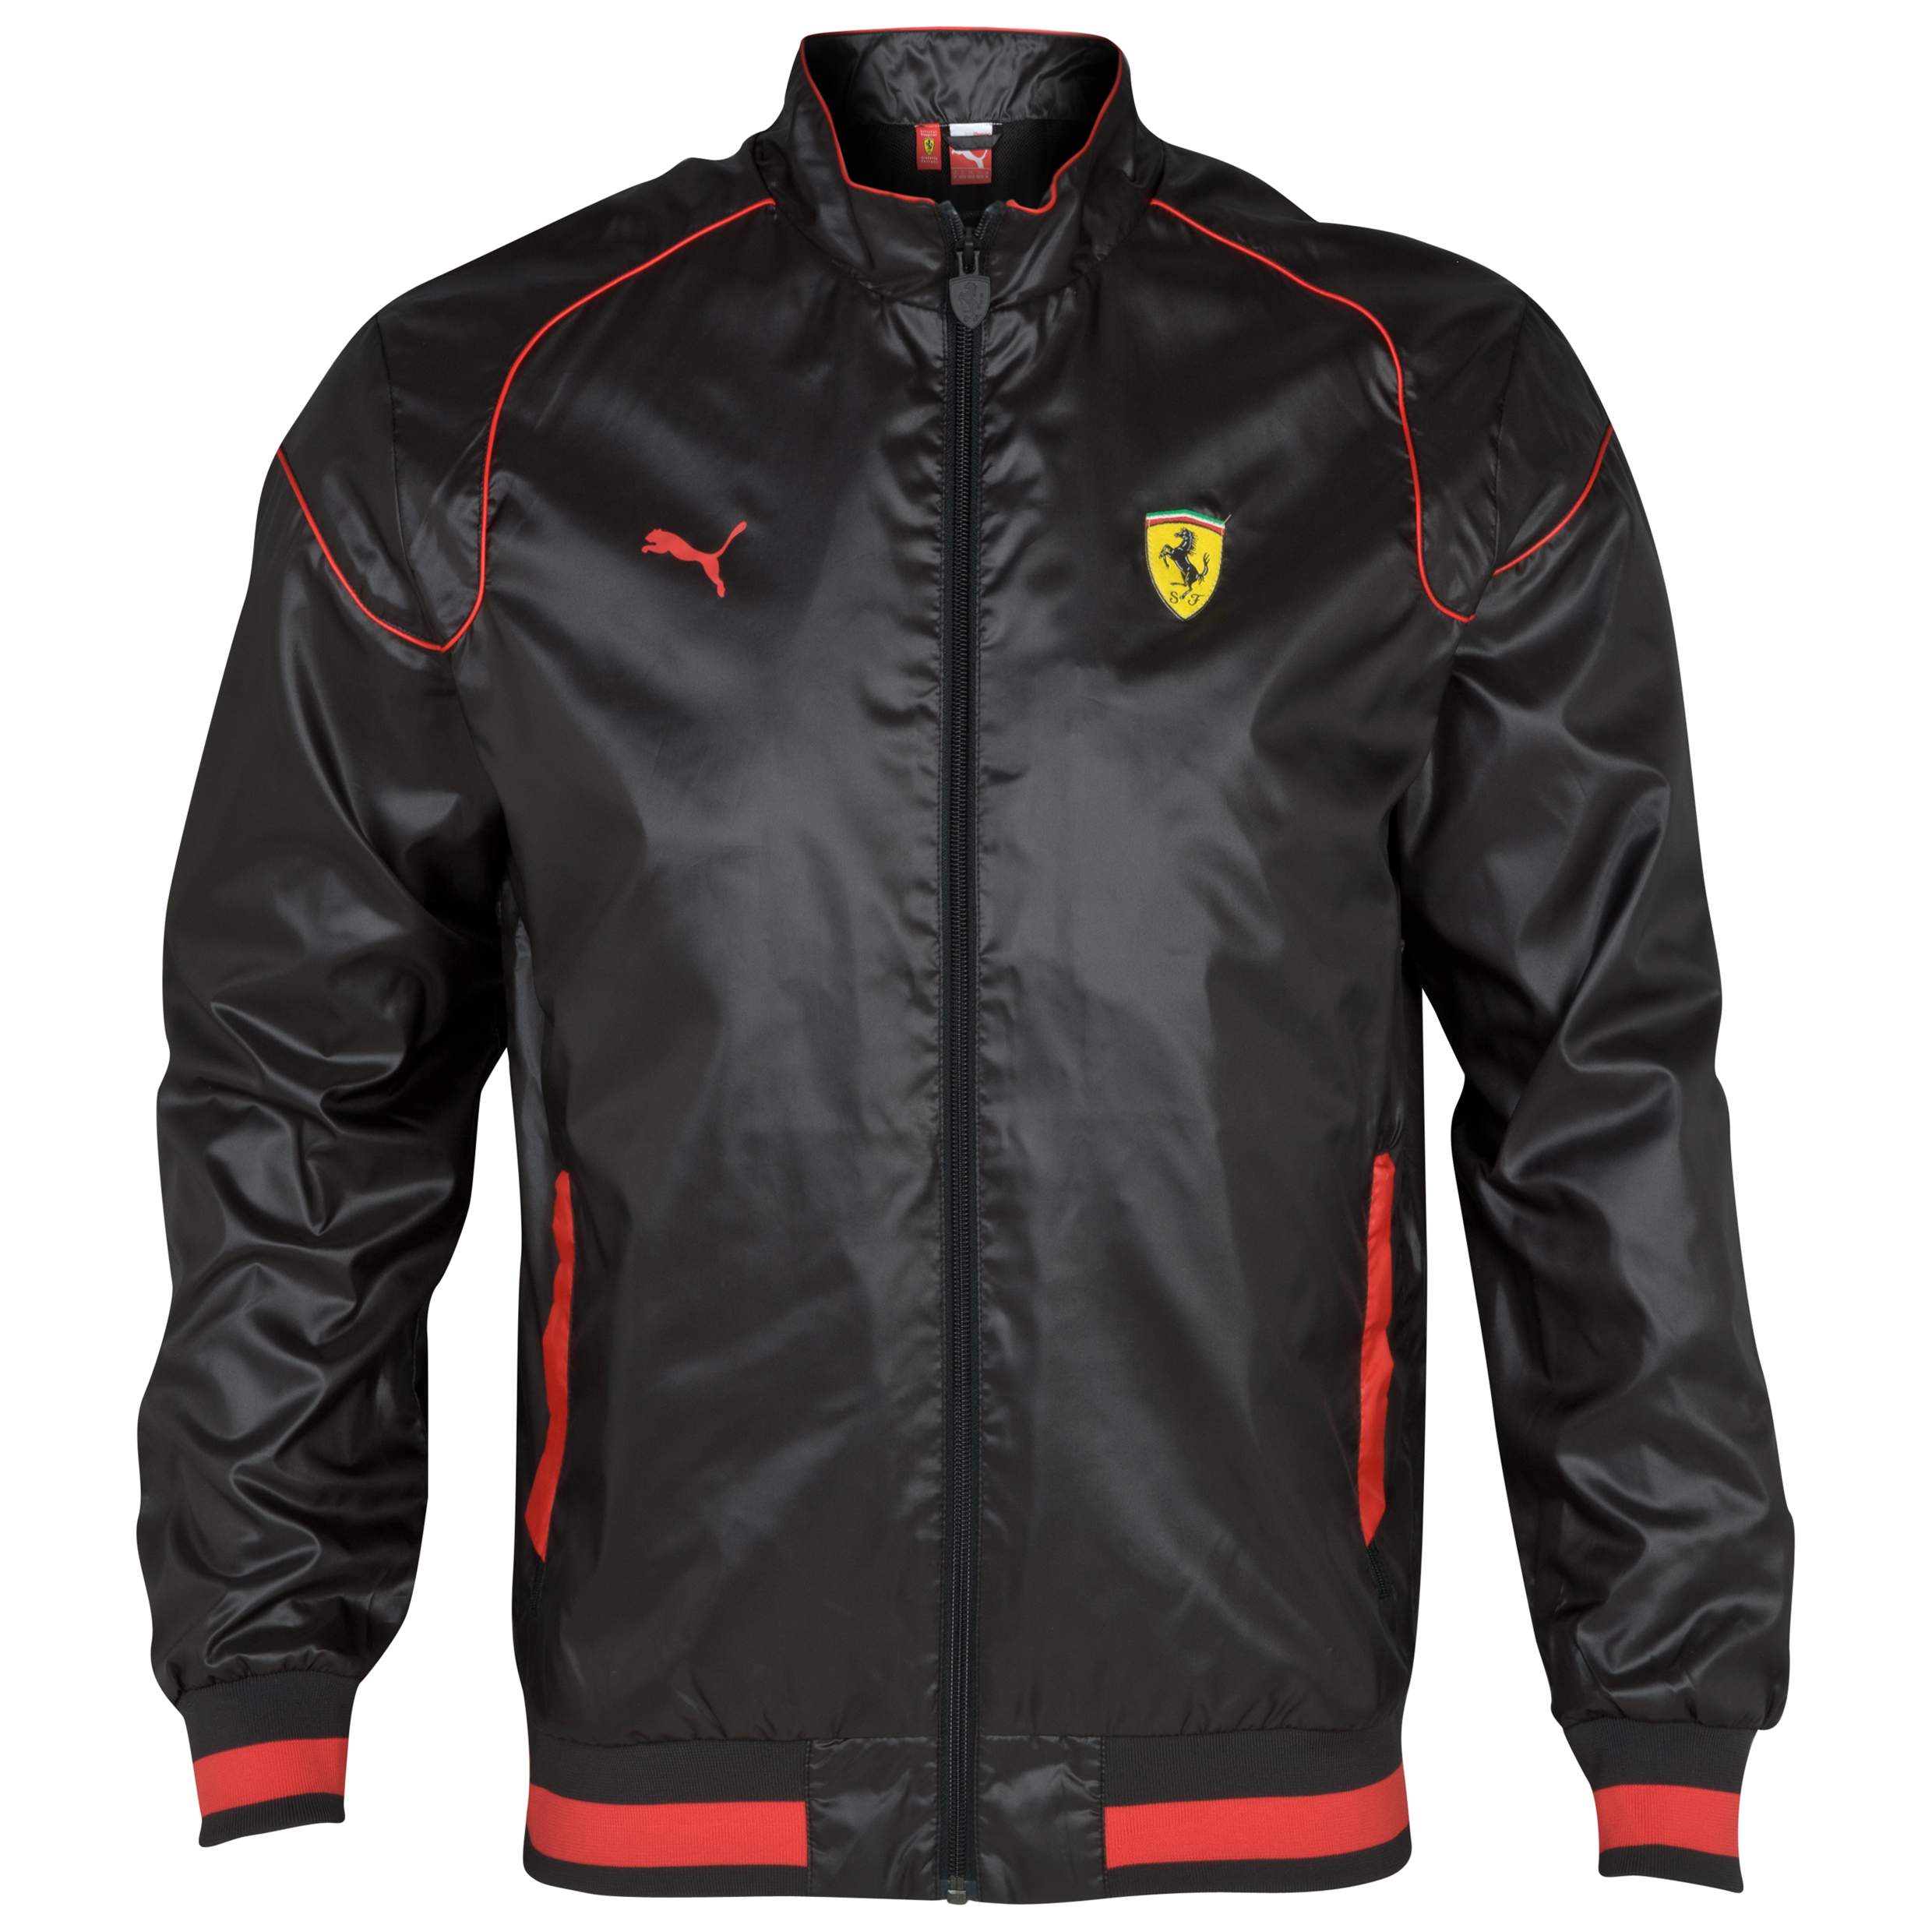 Scuderia Ferrari Lightweight Jacket - Black